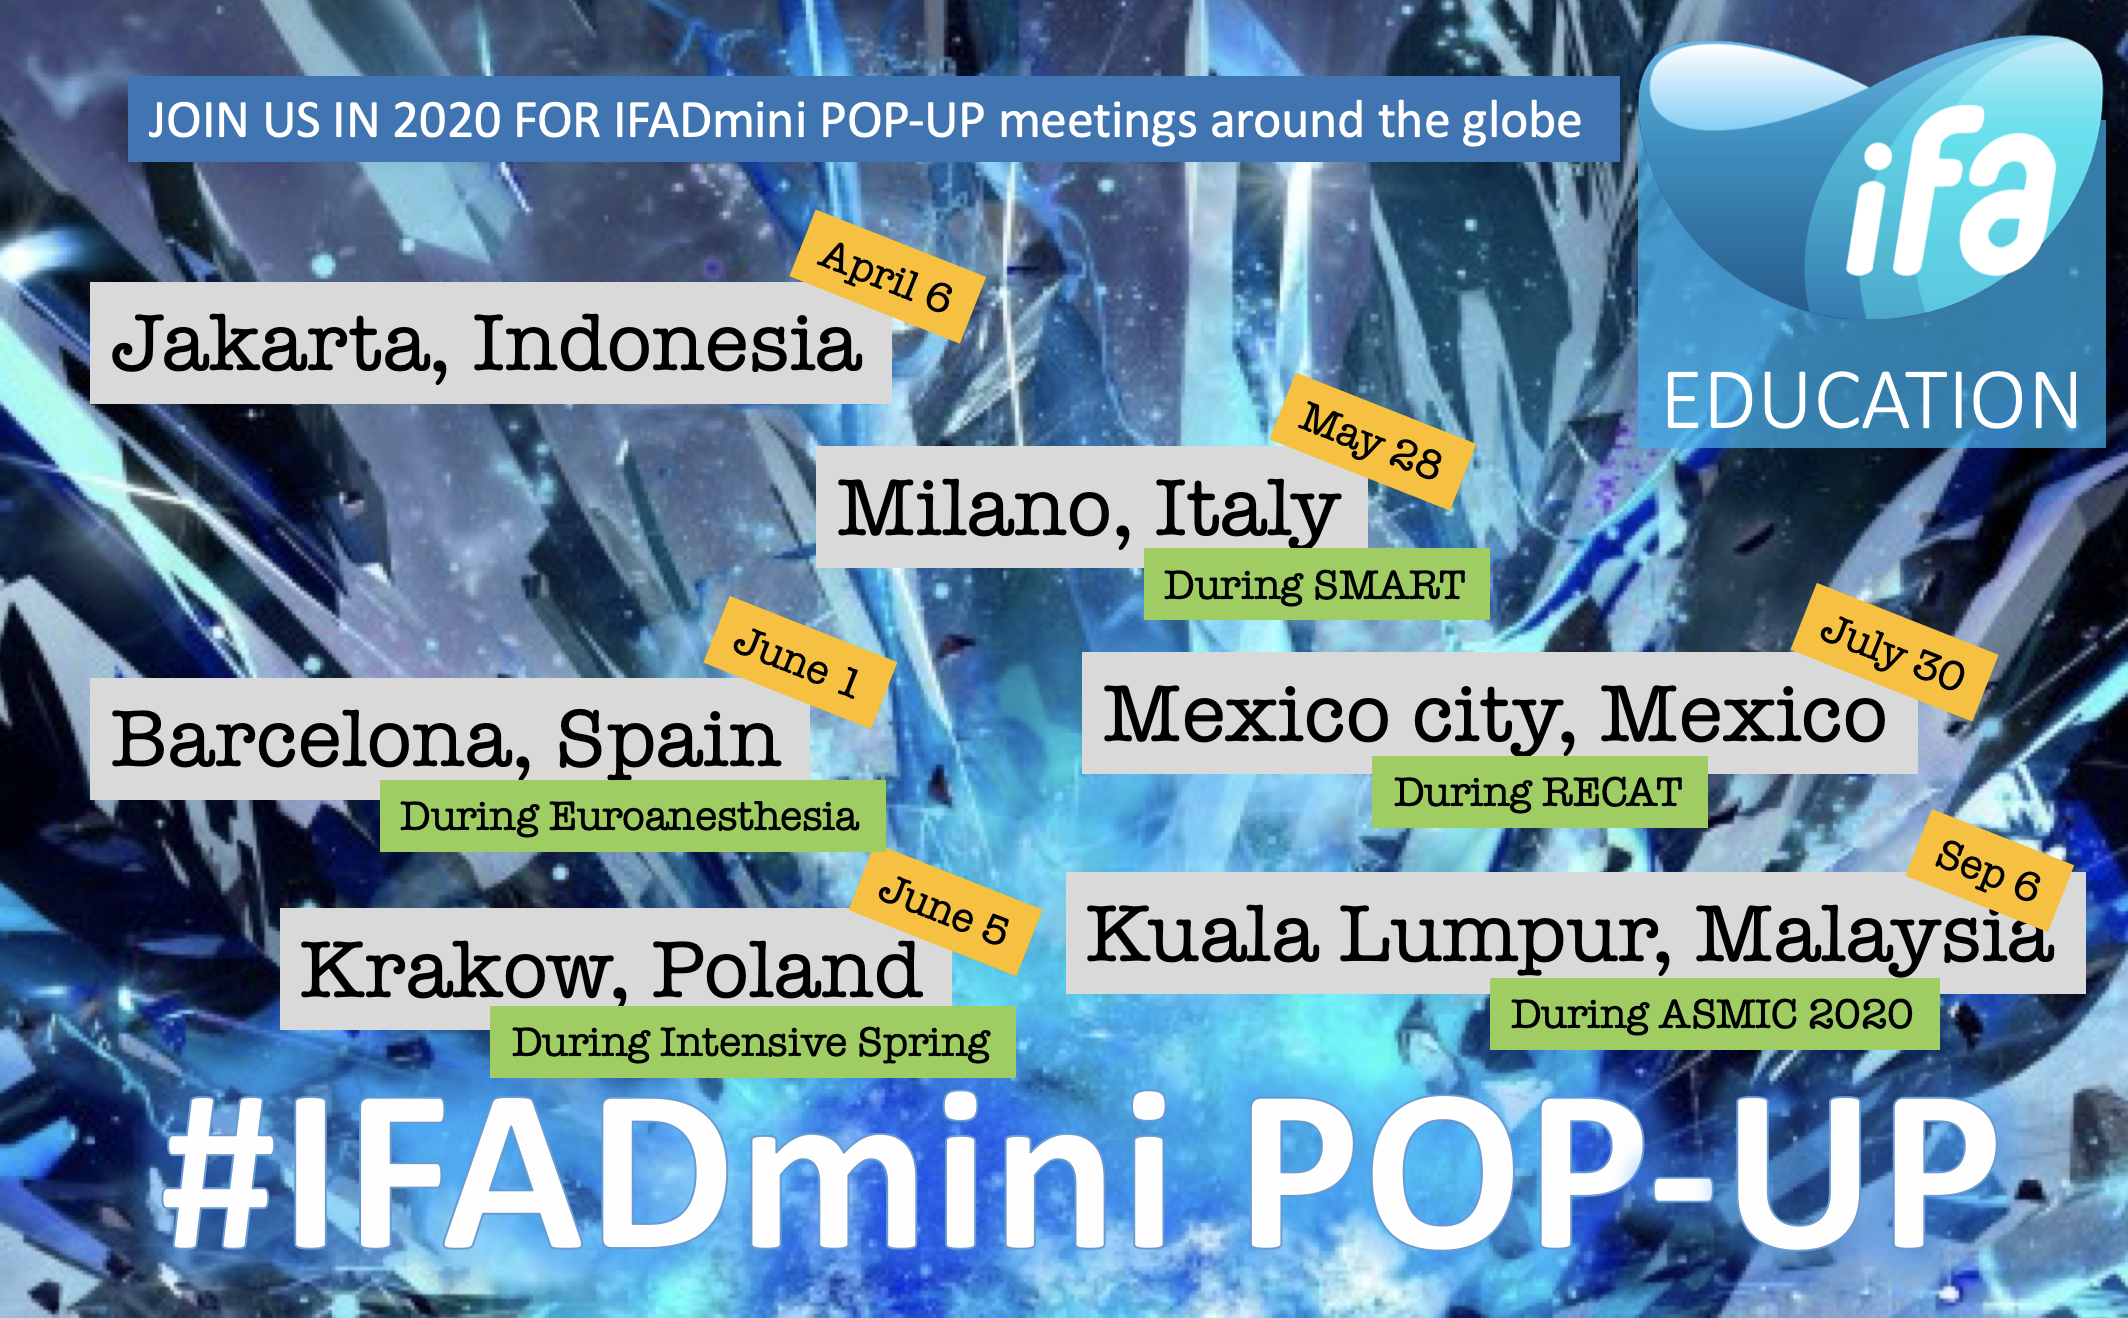 Join us for different #iFADmini pop-up meetings in 2021